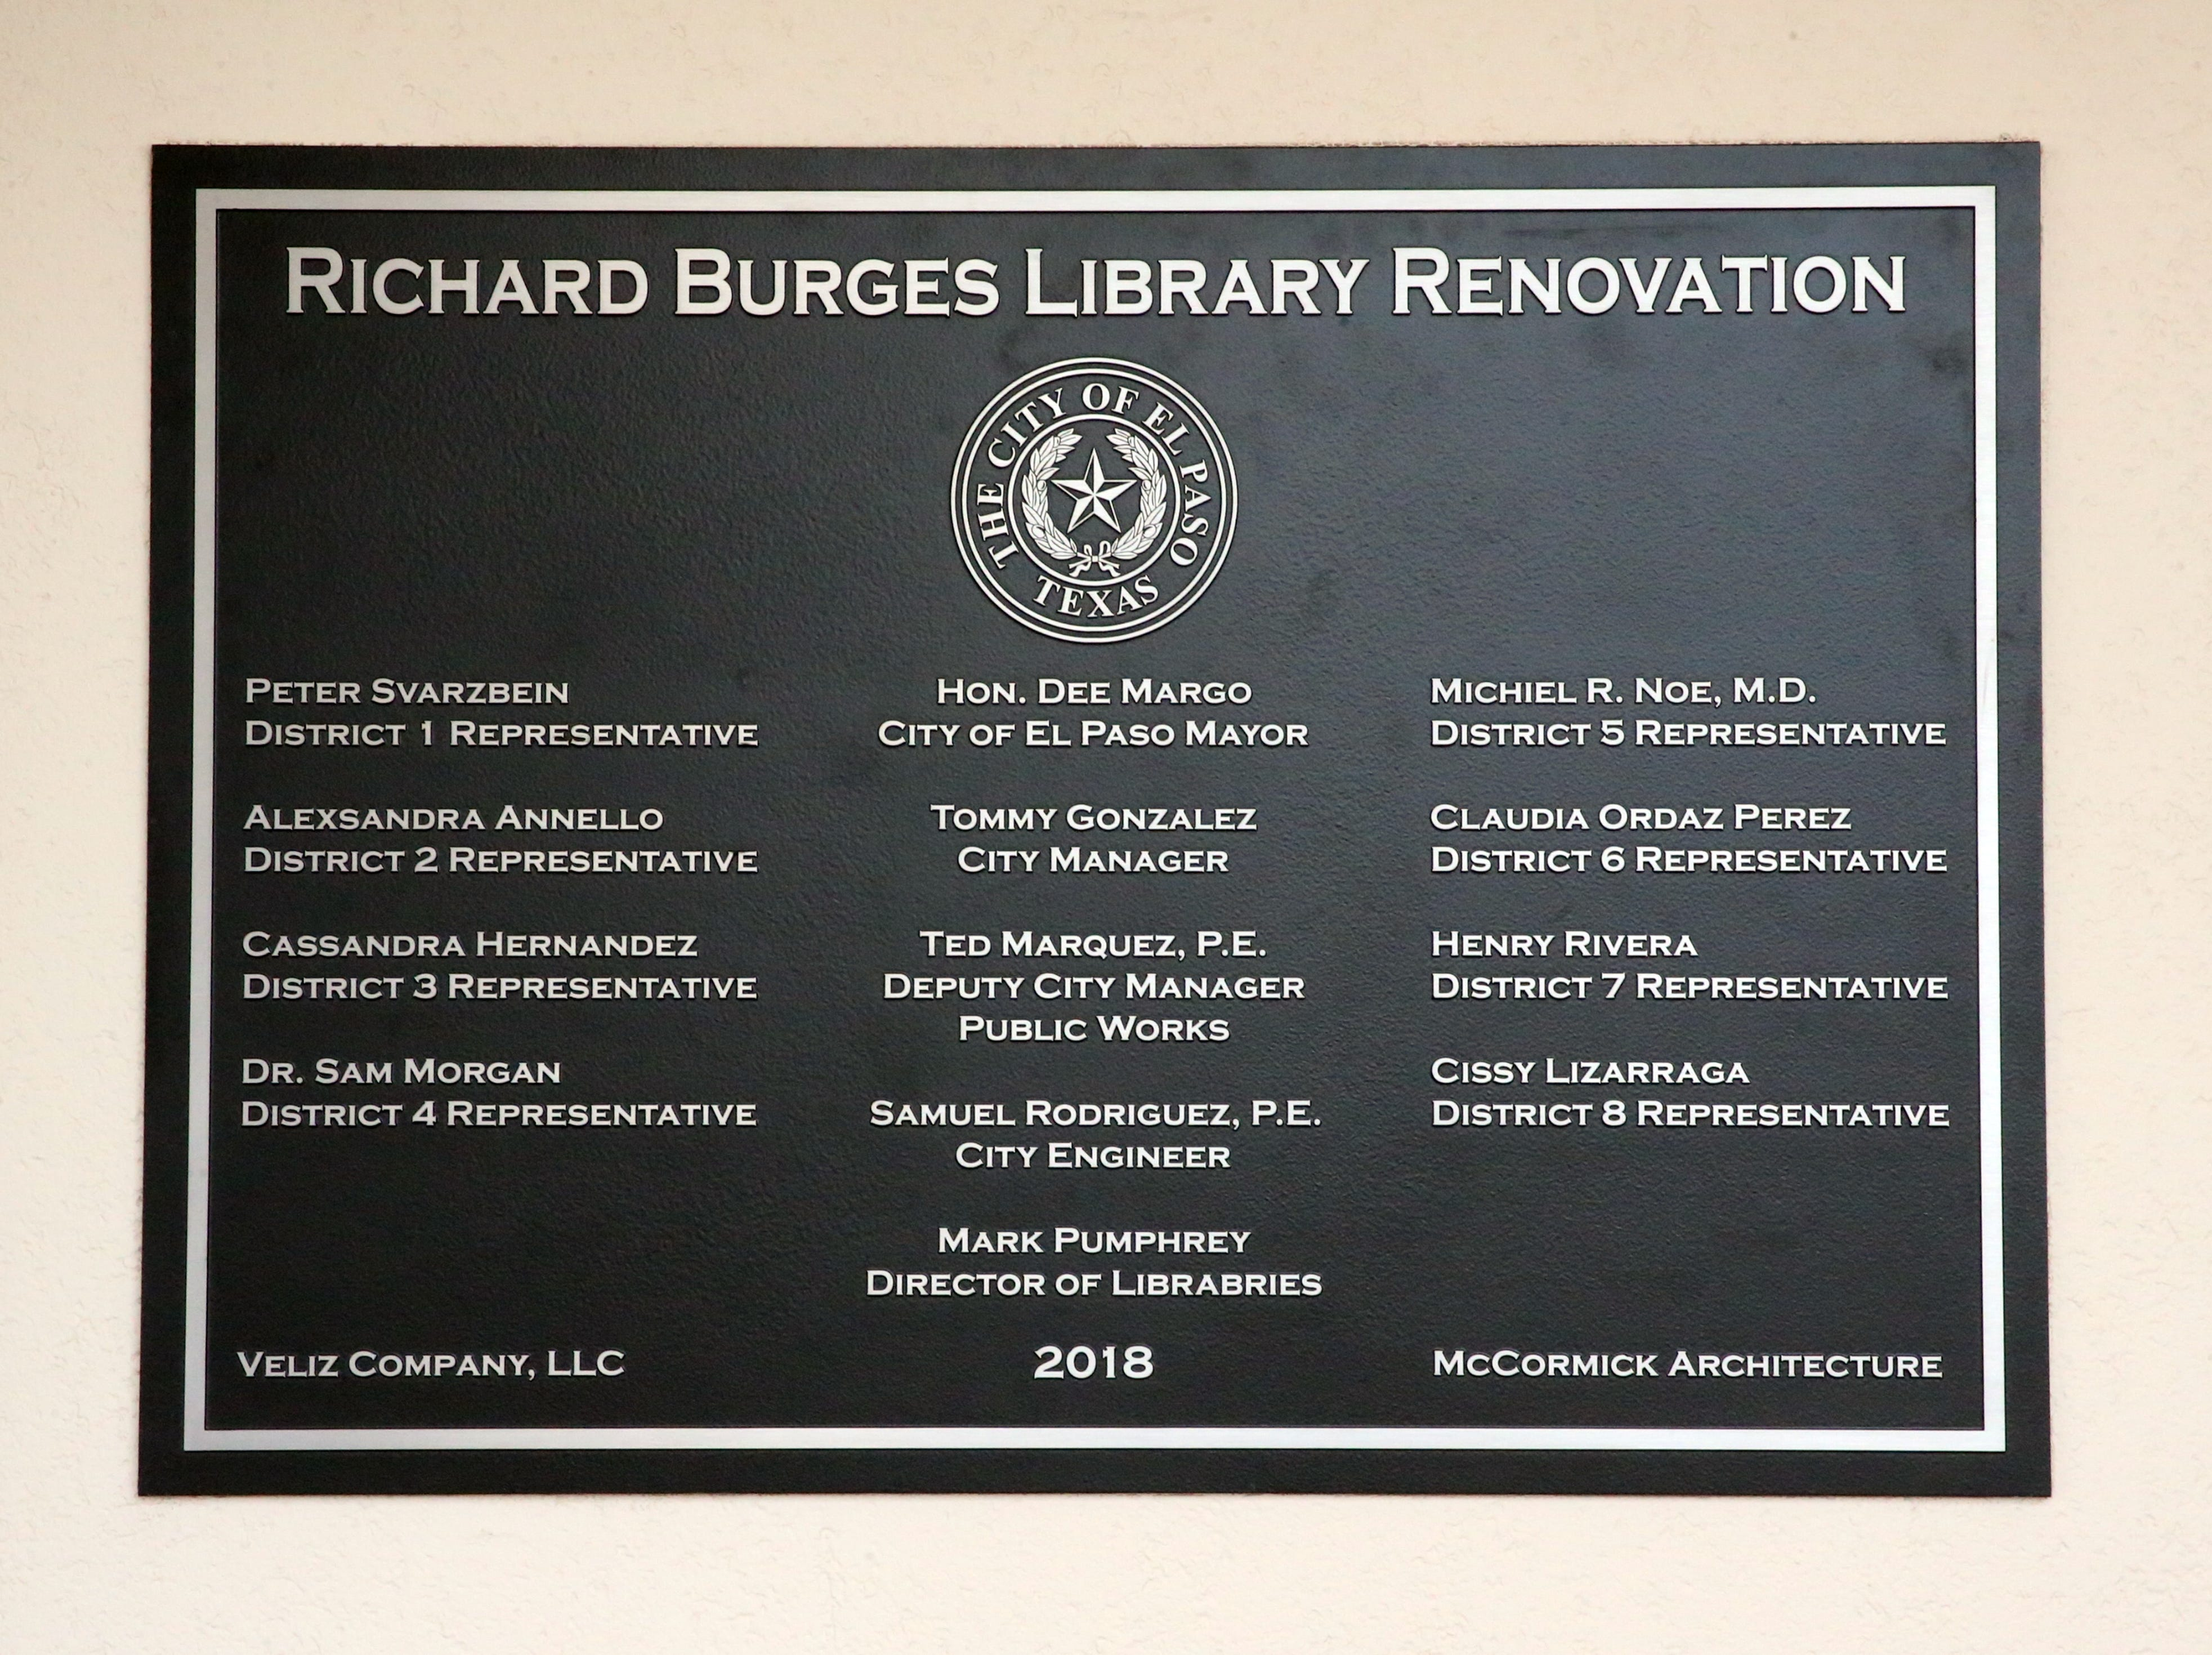 A new plaque is placed next to the old one outside the Richard Burges Library.